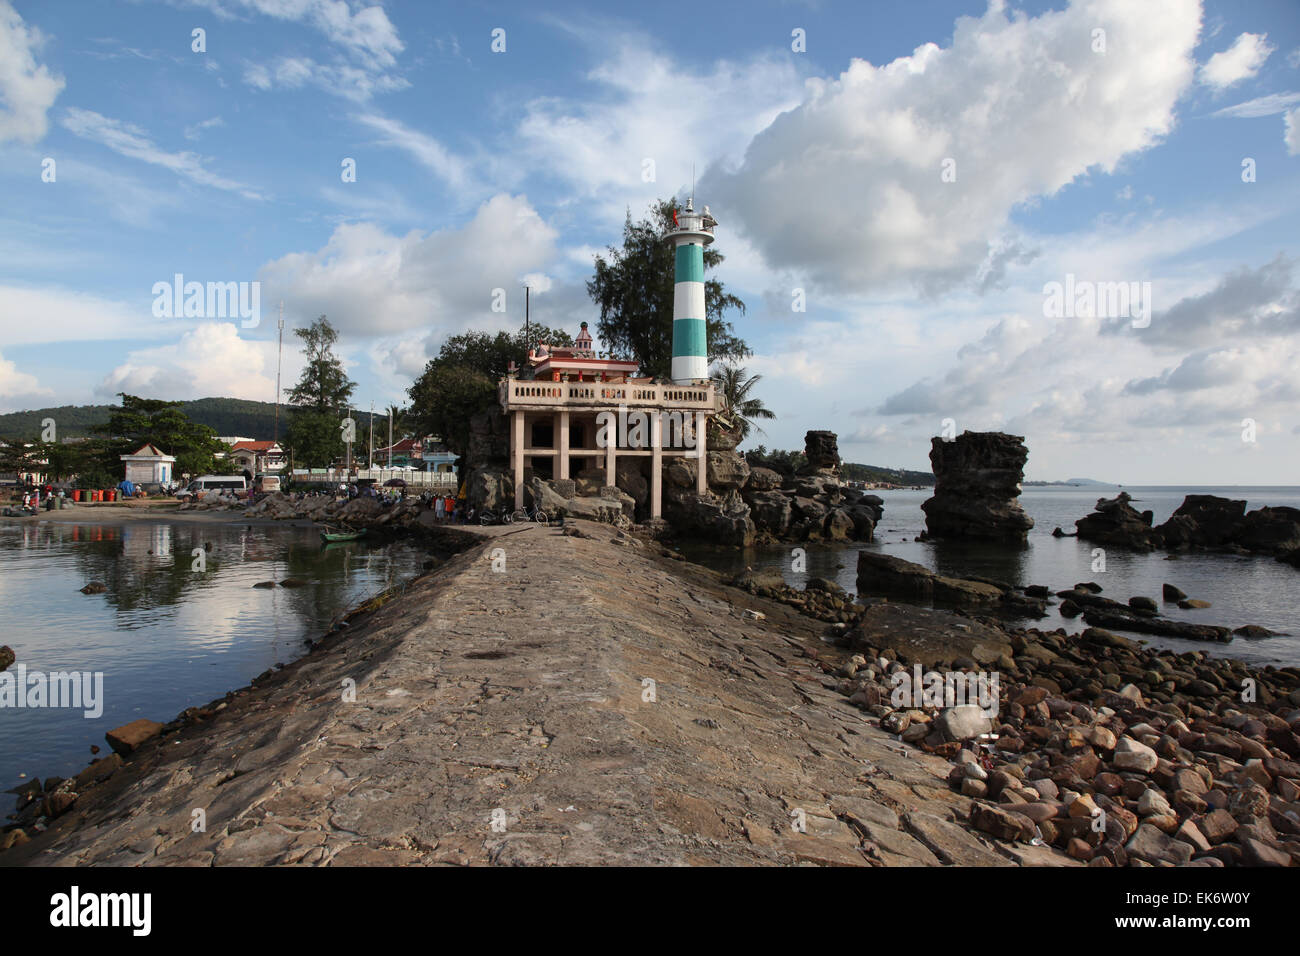 Lighthouse on the island of Phu Quoc, Vietnam, Southeast Asia Stock Photo